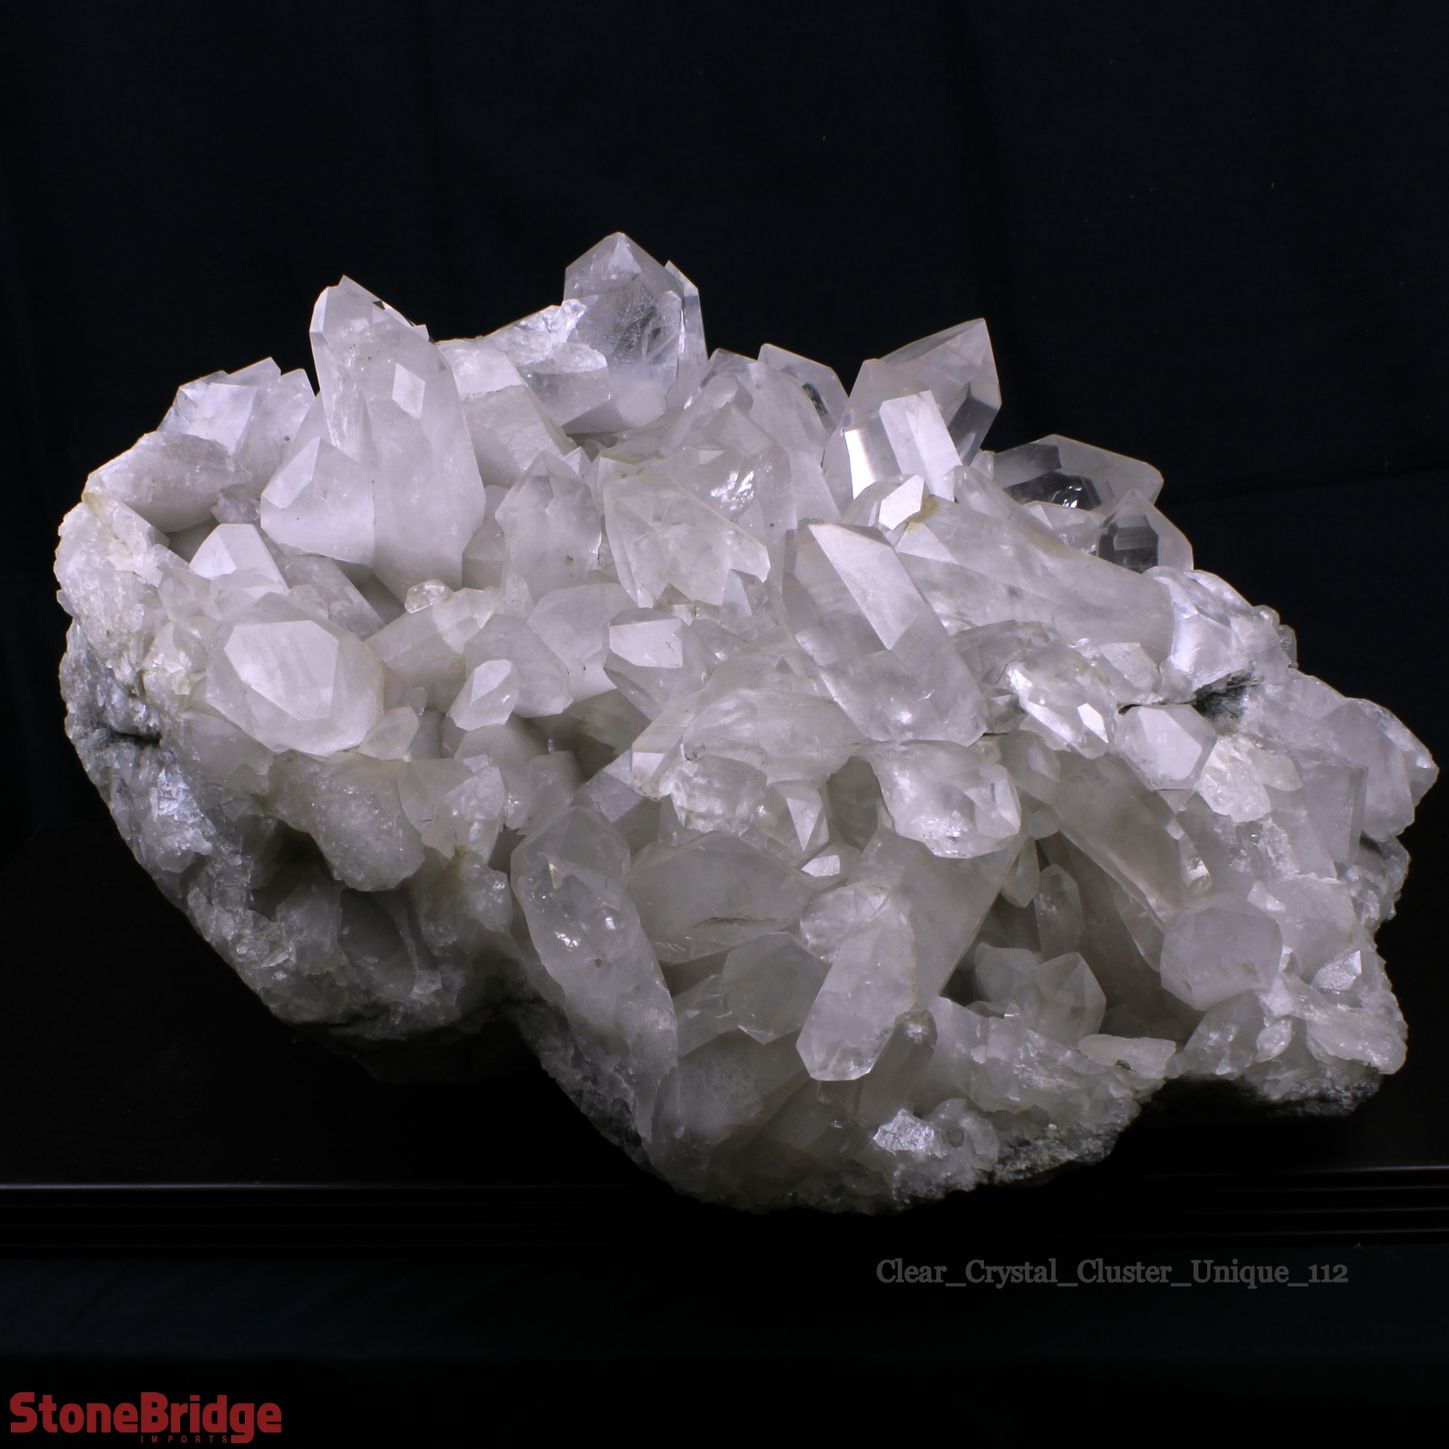 CLCRU112_Clear_Crystal_Cluster_Unique_1126.jpg